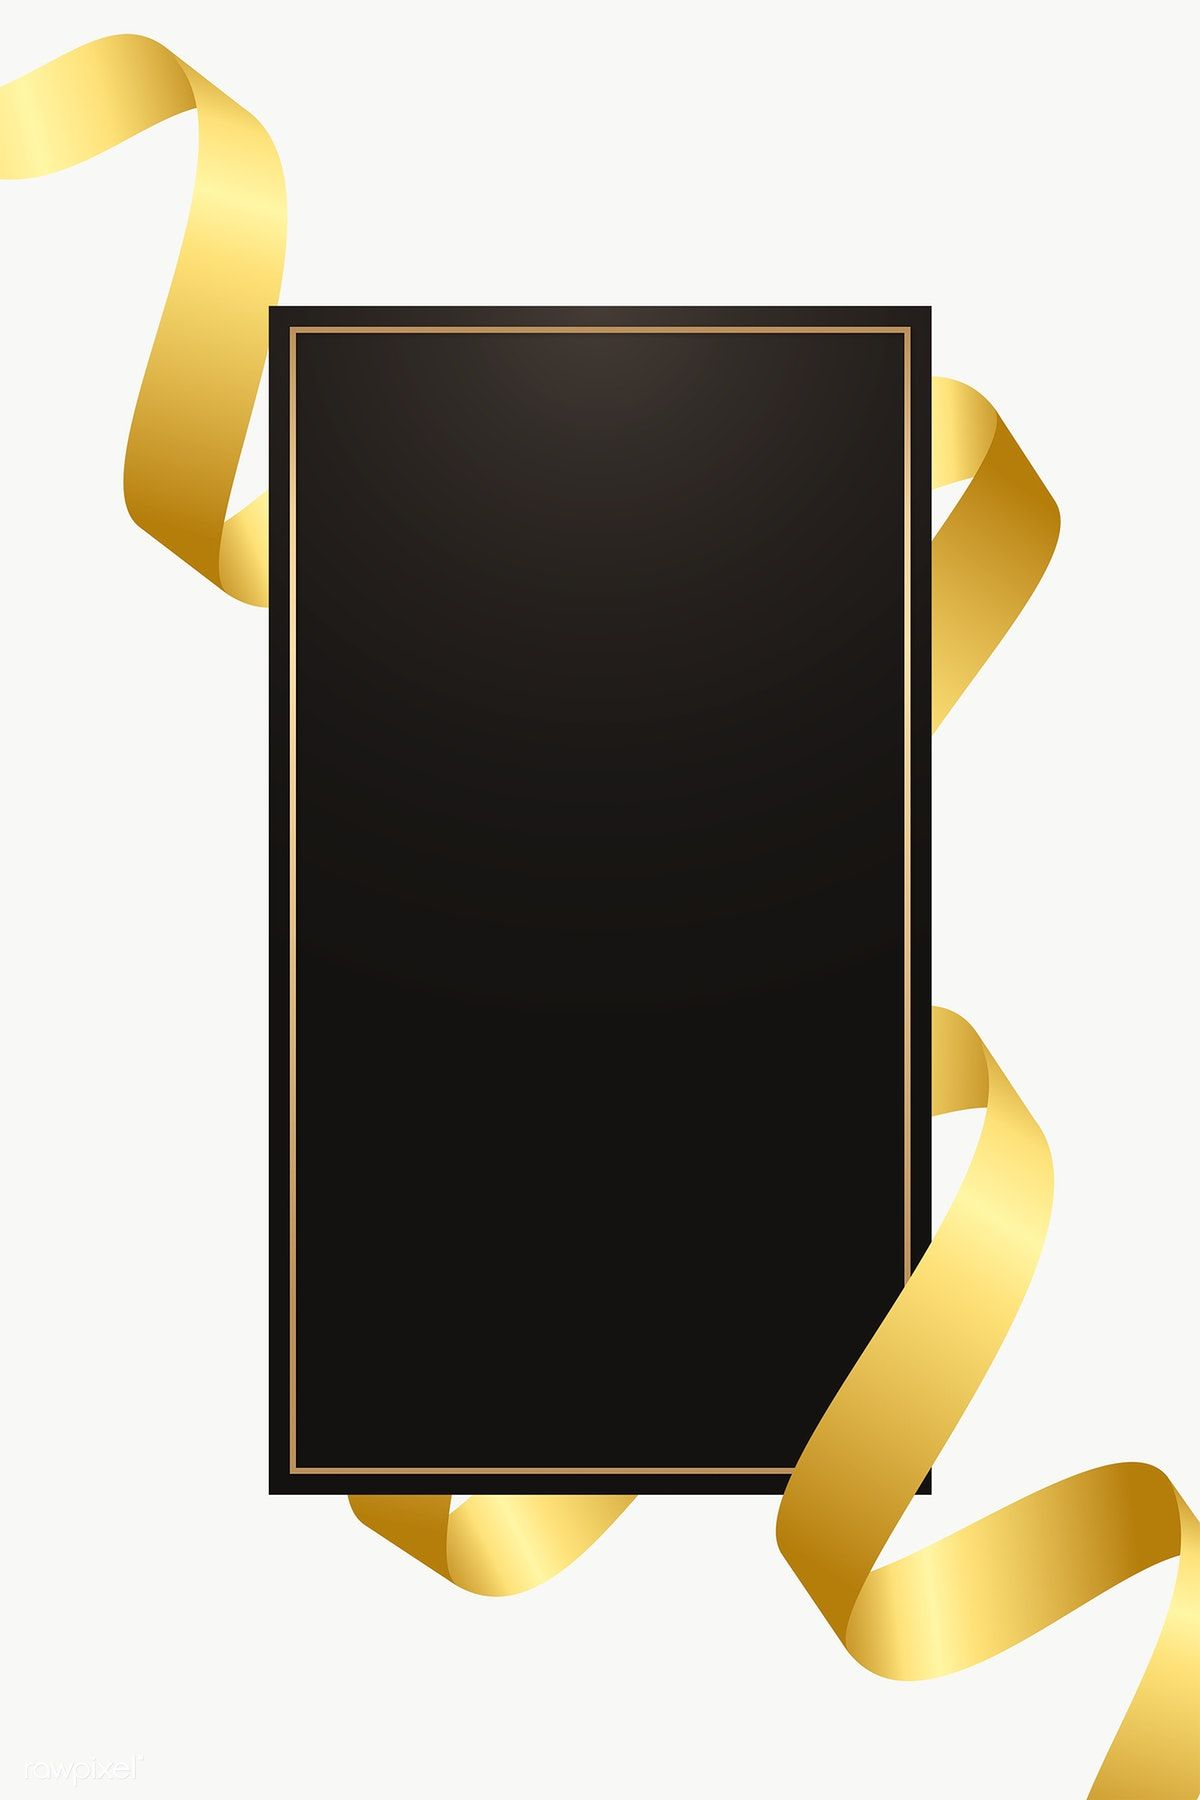 Black Rectangle Frame With Gold Ribbon Transparent Png Premium Image By Rawpixel Com Kappy Kappy Gold And Black Background Gold Ribbons Black Rectangle